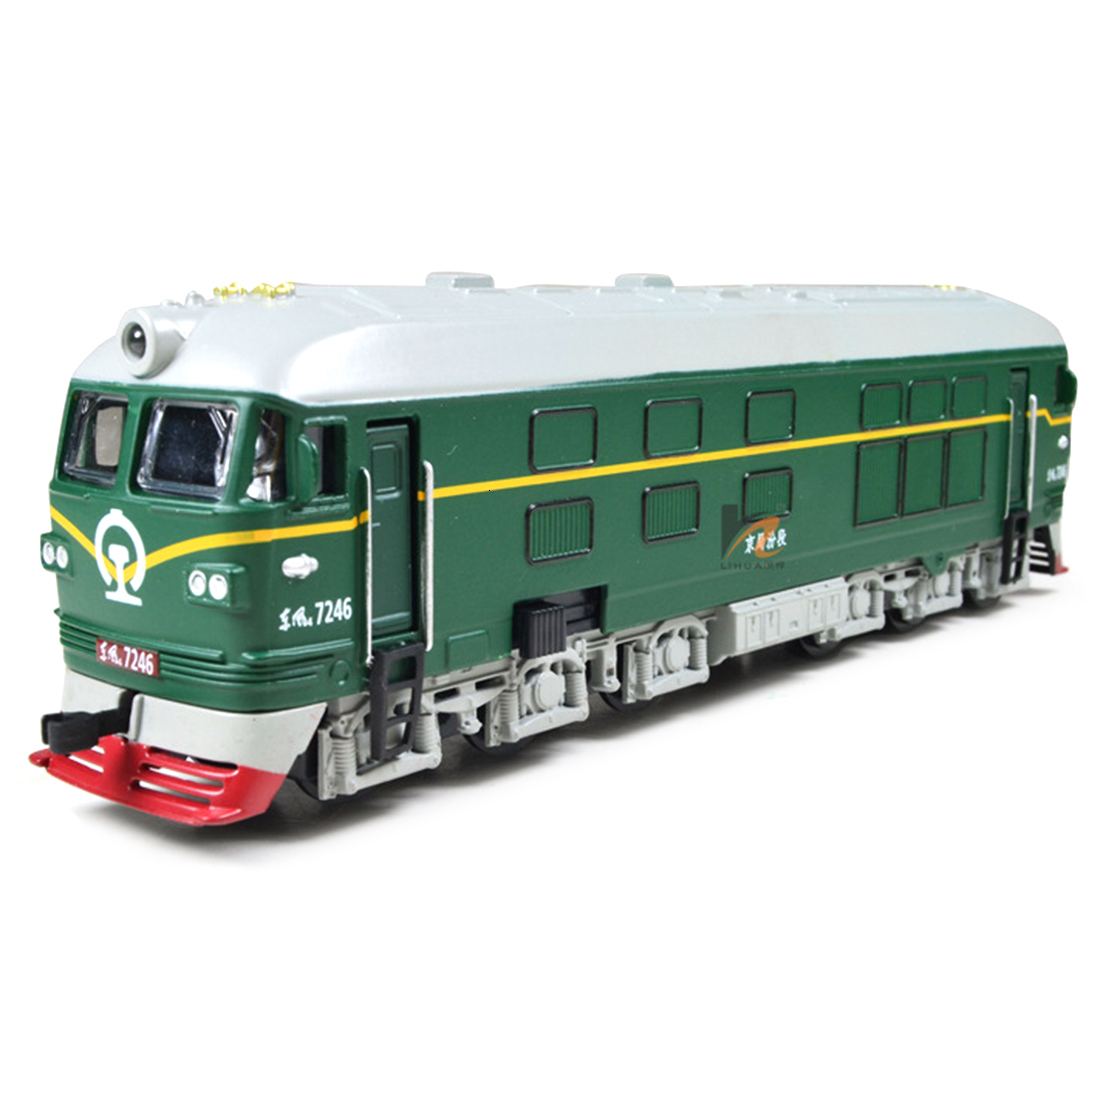 Rowsfire 1:87 Simulated Alloy Train Locomotive Model Pull Back Vehicle Toy With Sounds And Lights For Architectural Sand Table